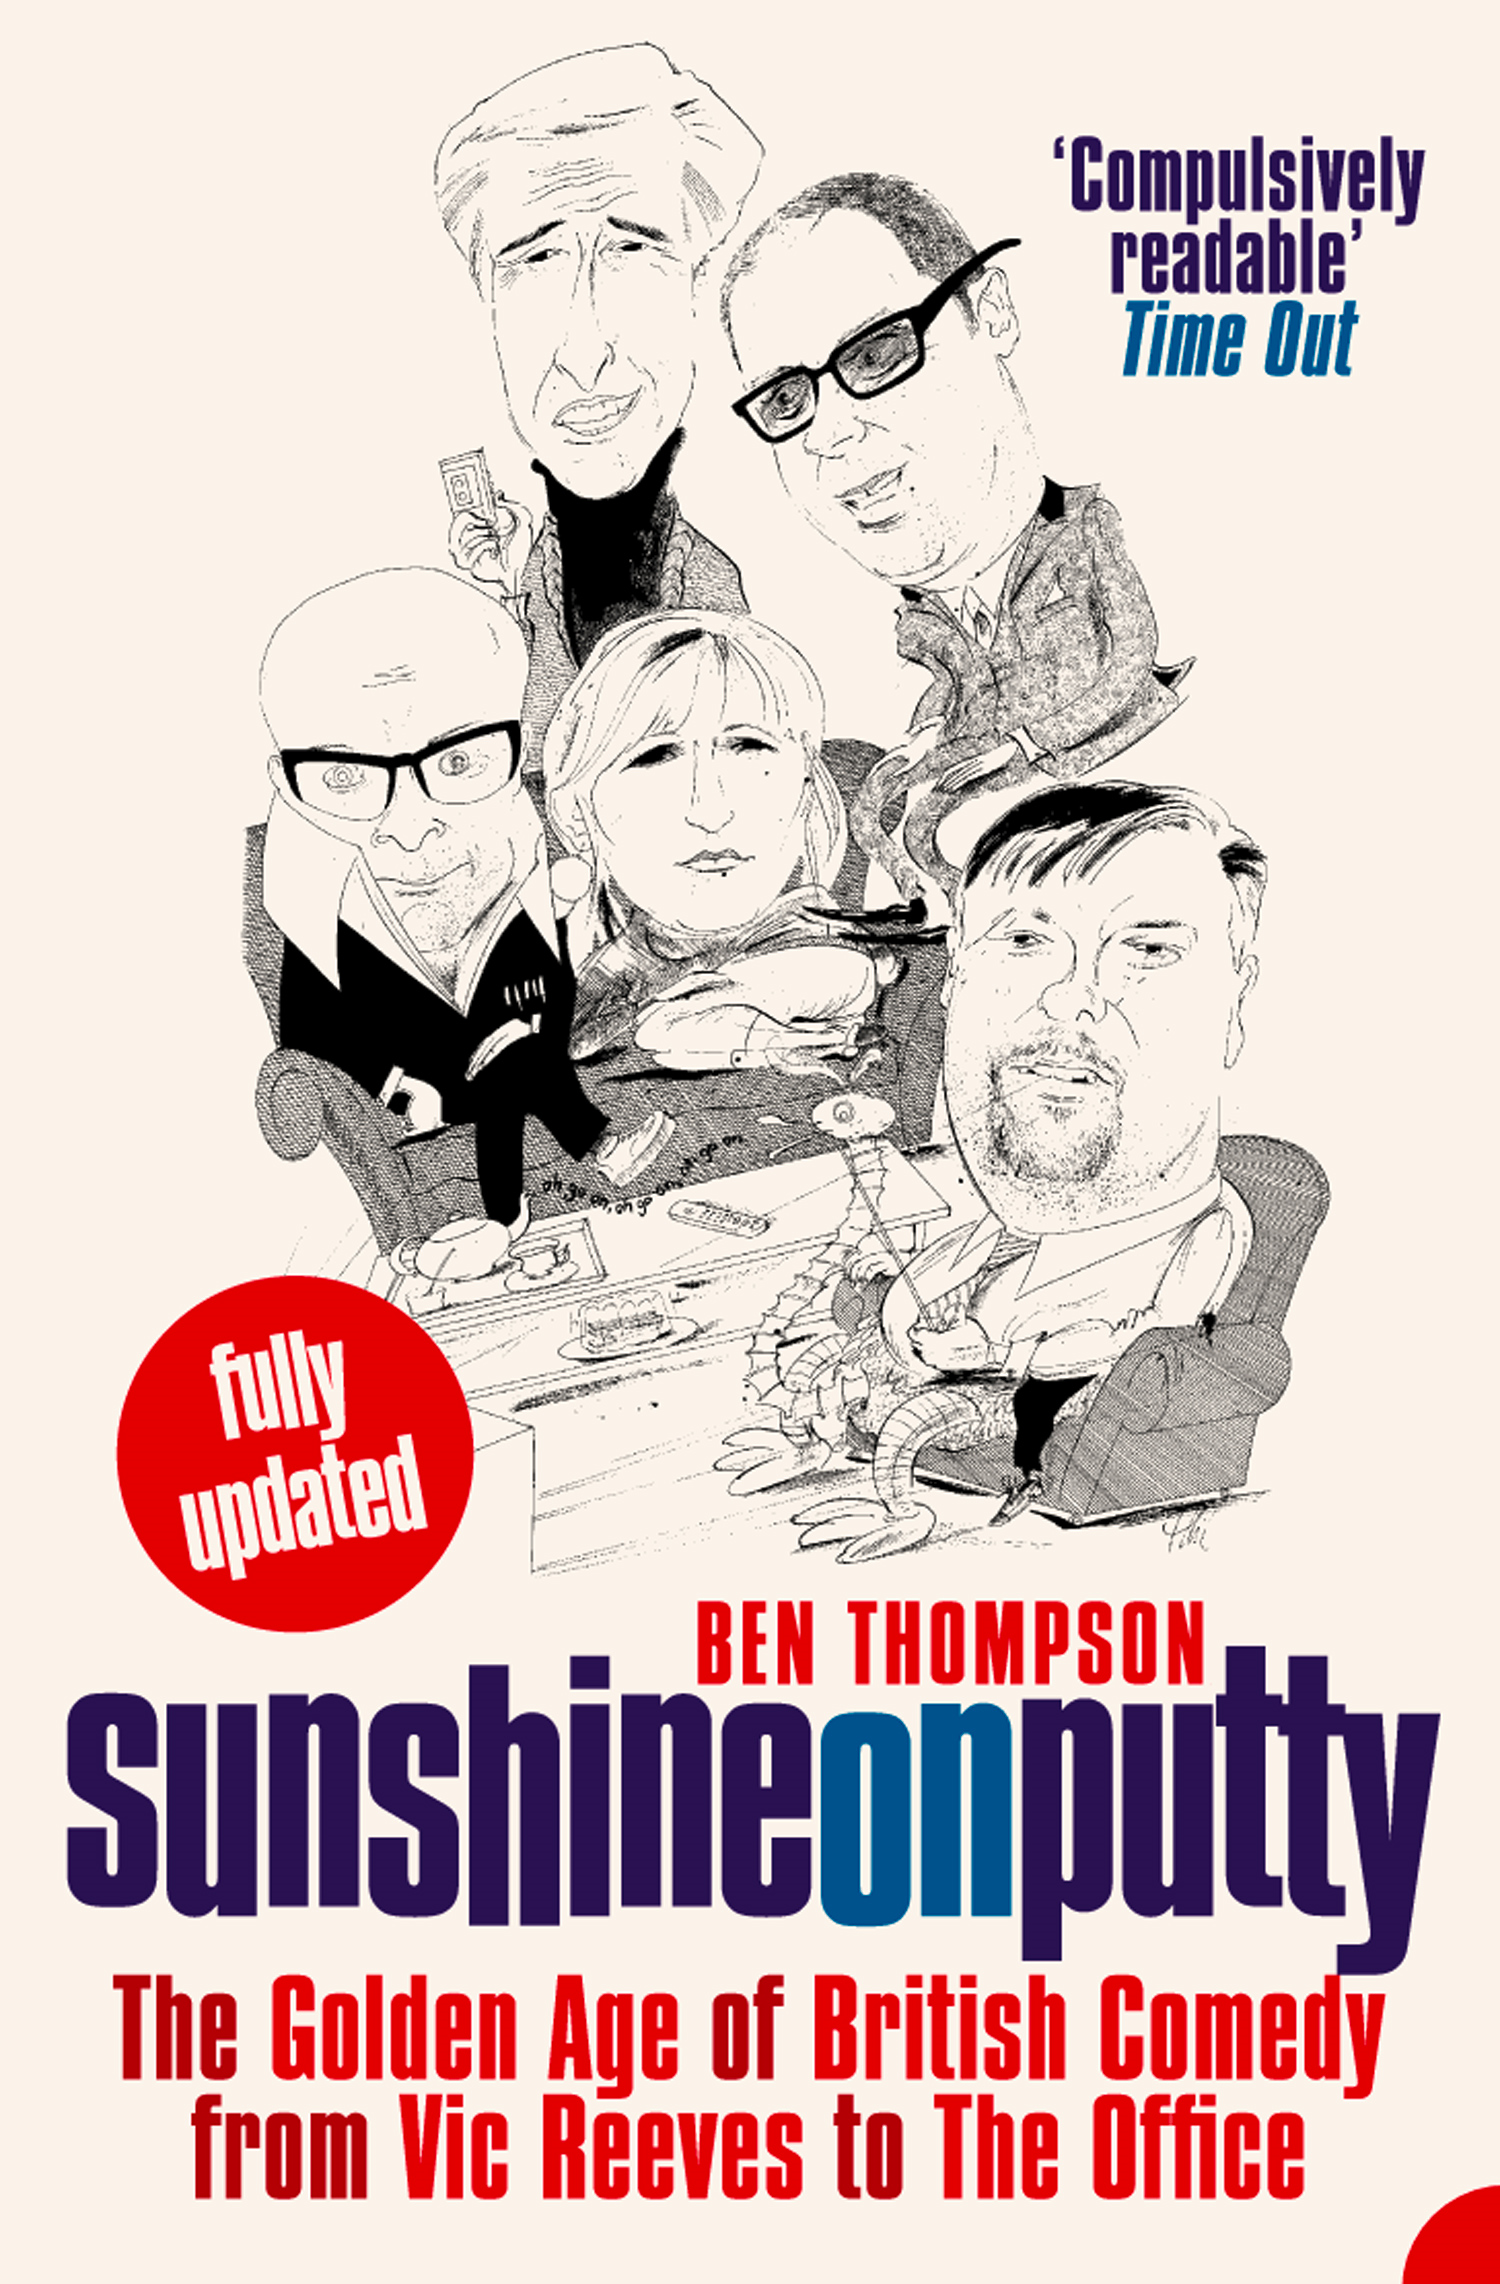 Sunshine on Putty: The Golden Age of British Comedy from Vic Reeves to The Office